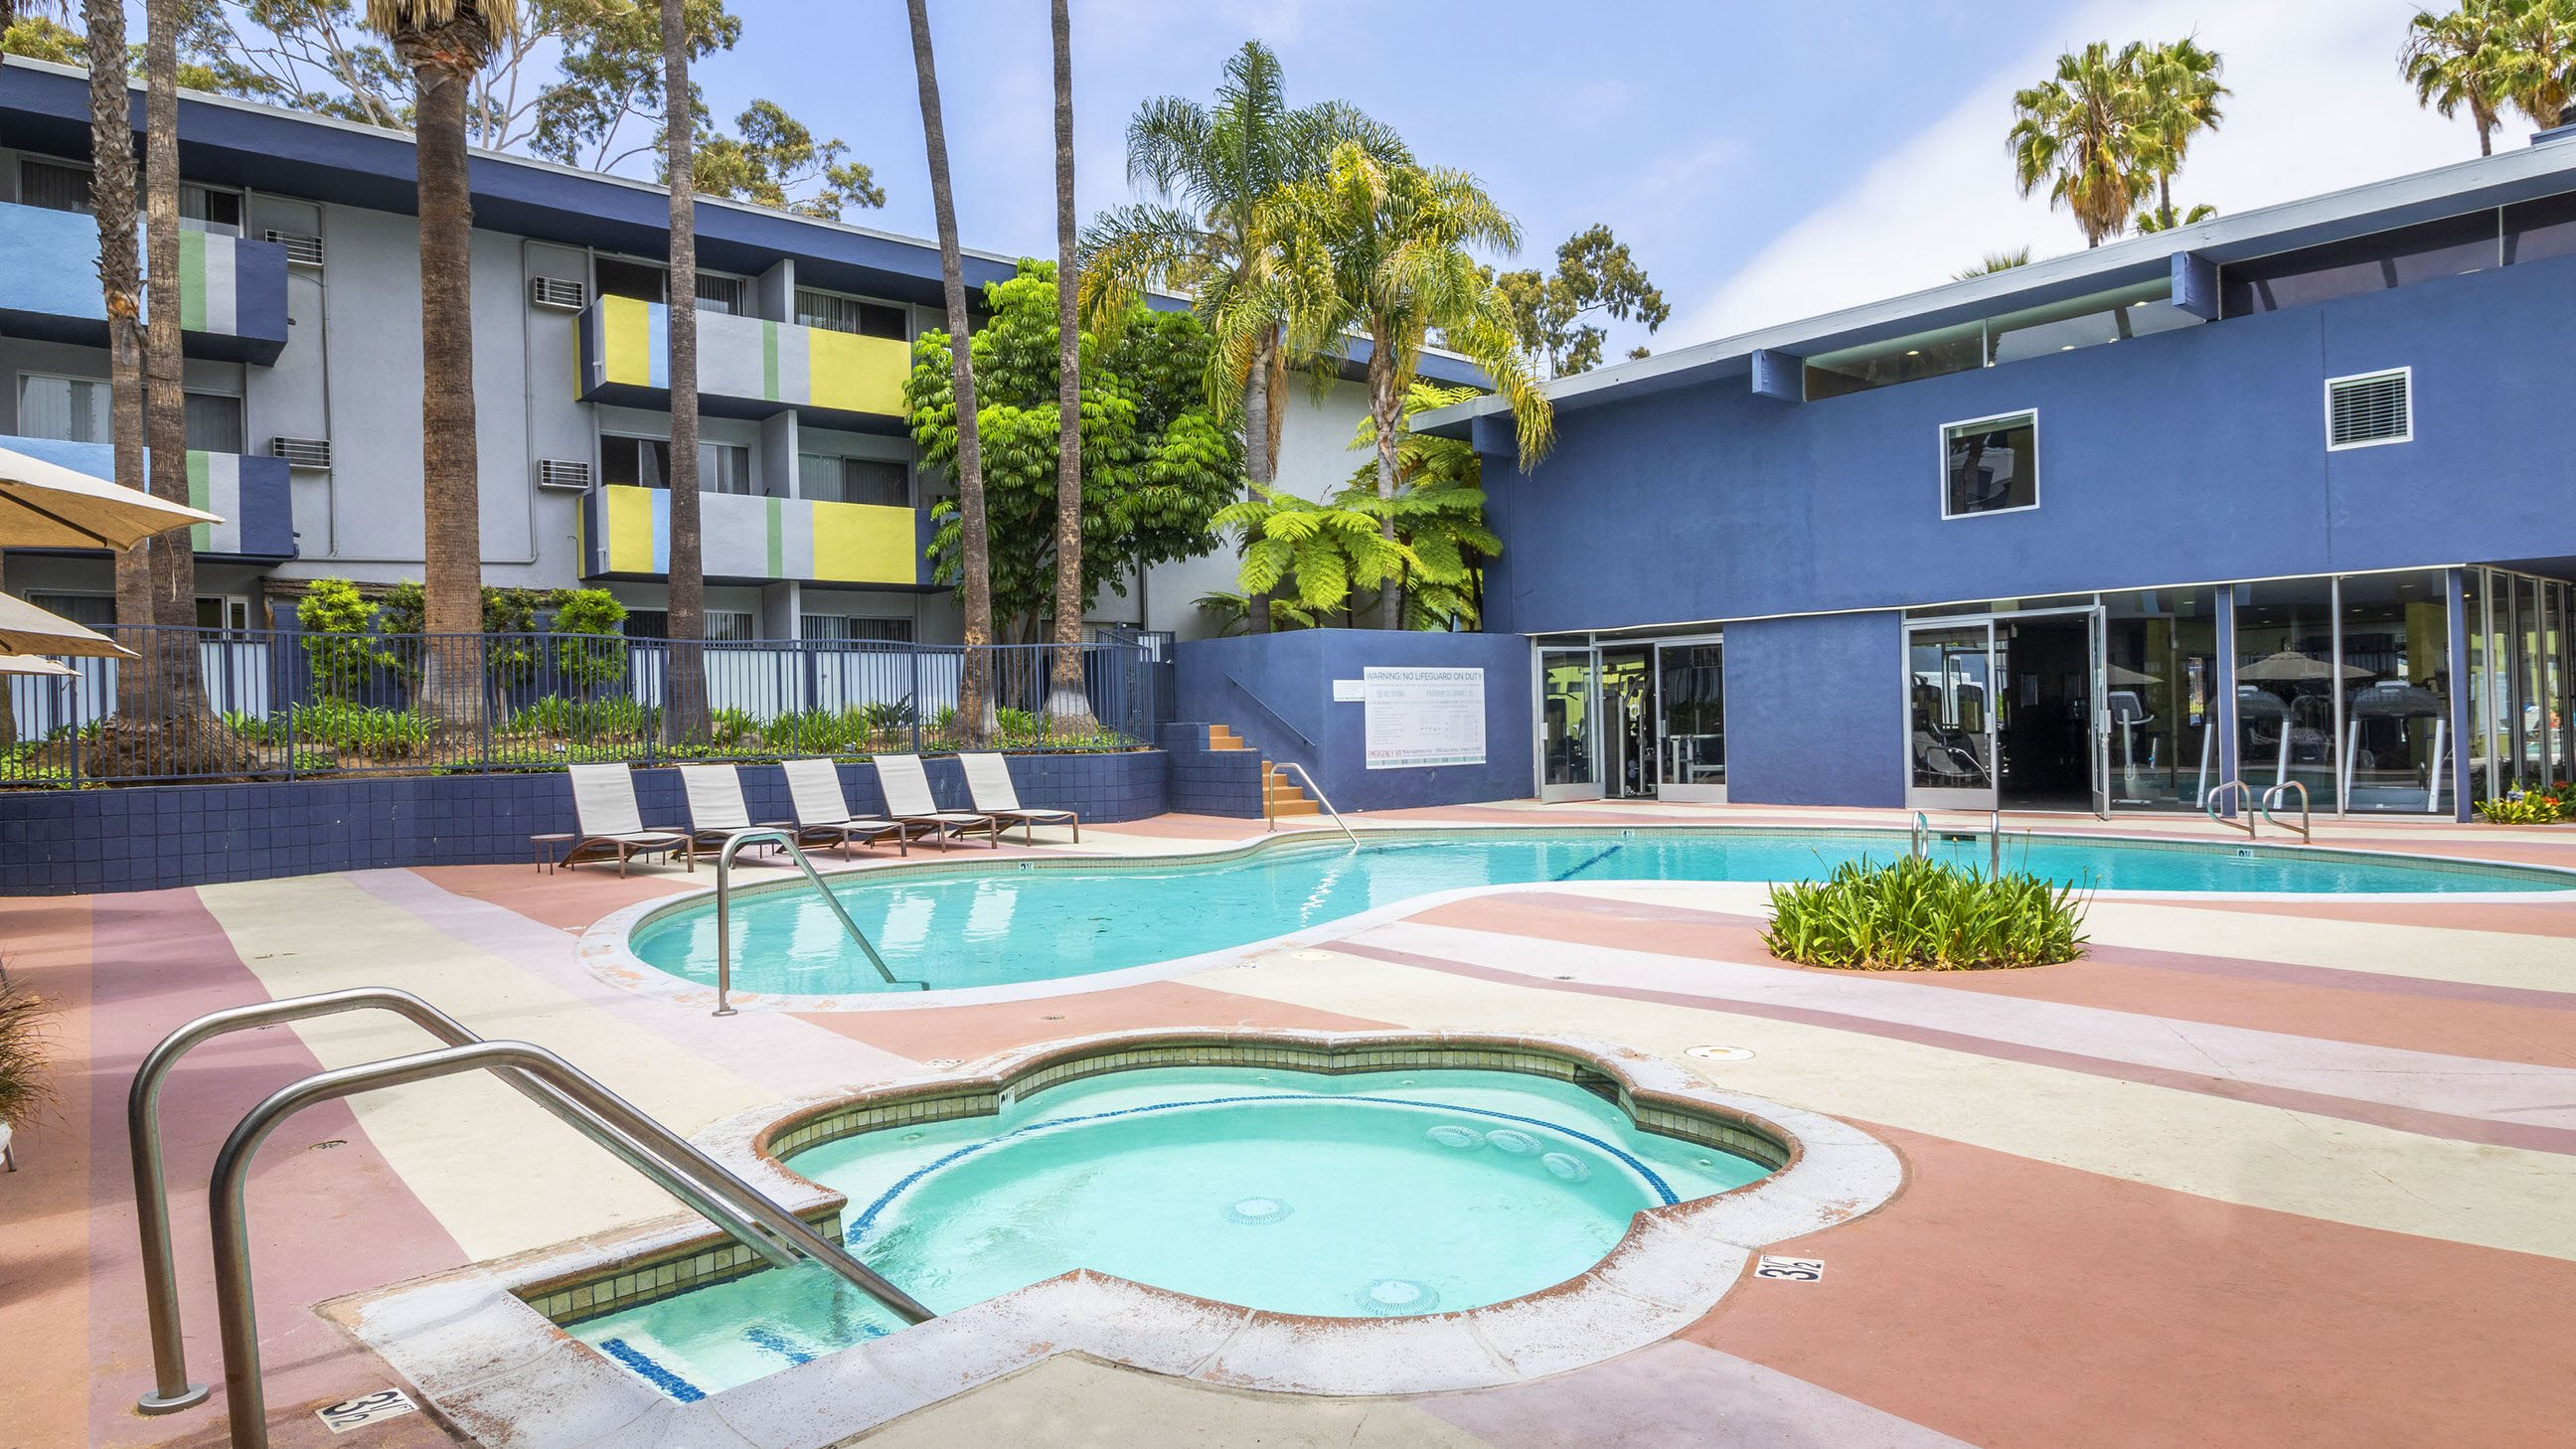 Sparkling Pool with Spa at Milano Apartments 20900 Anza Ave Torrance, CA 90503